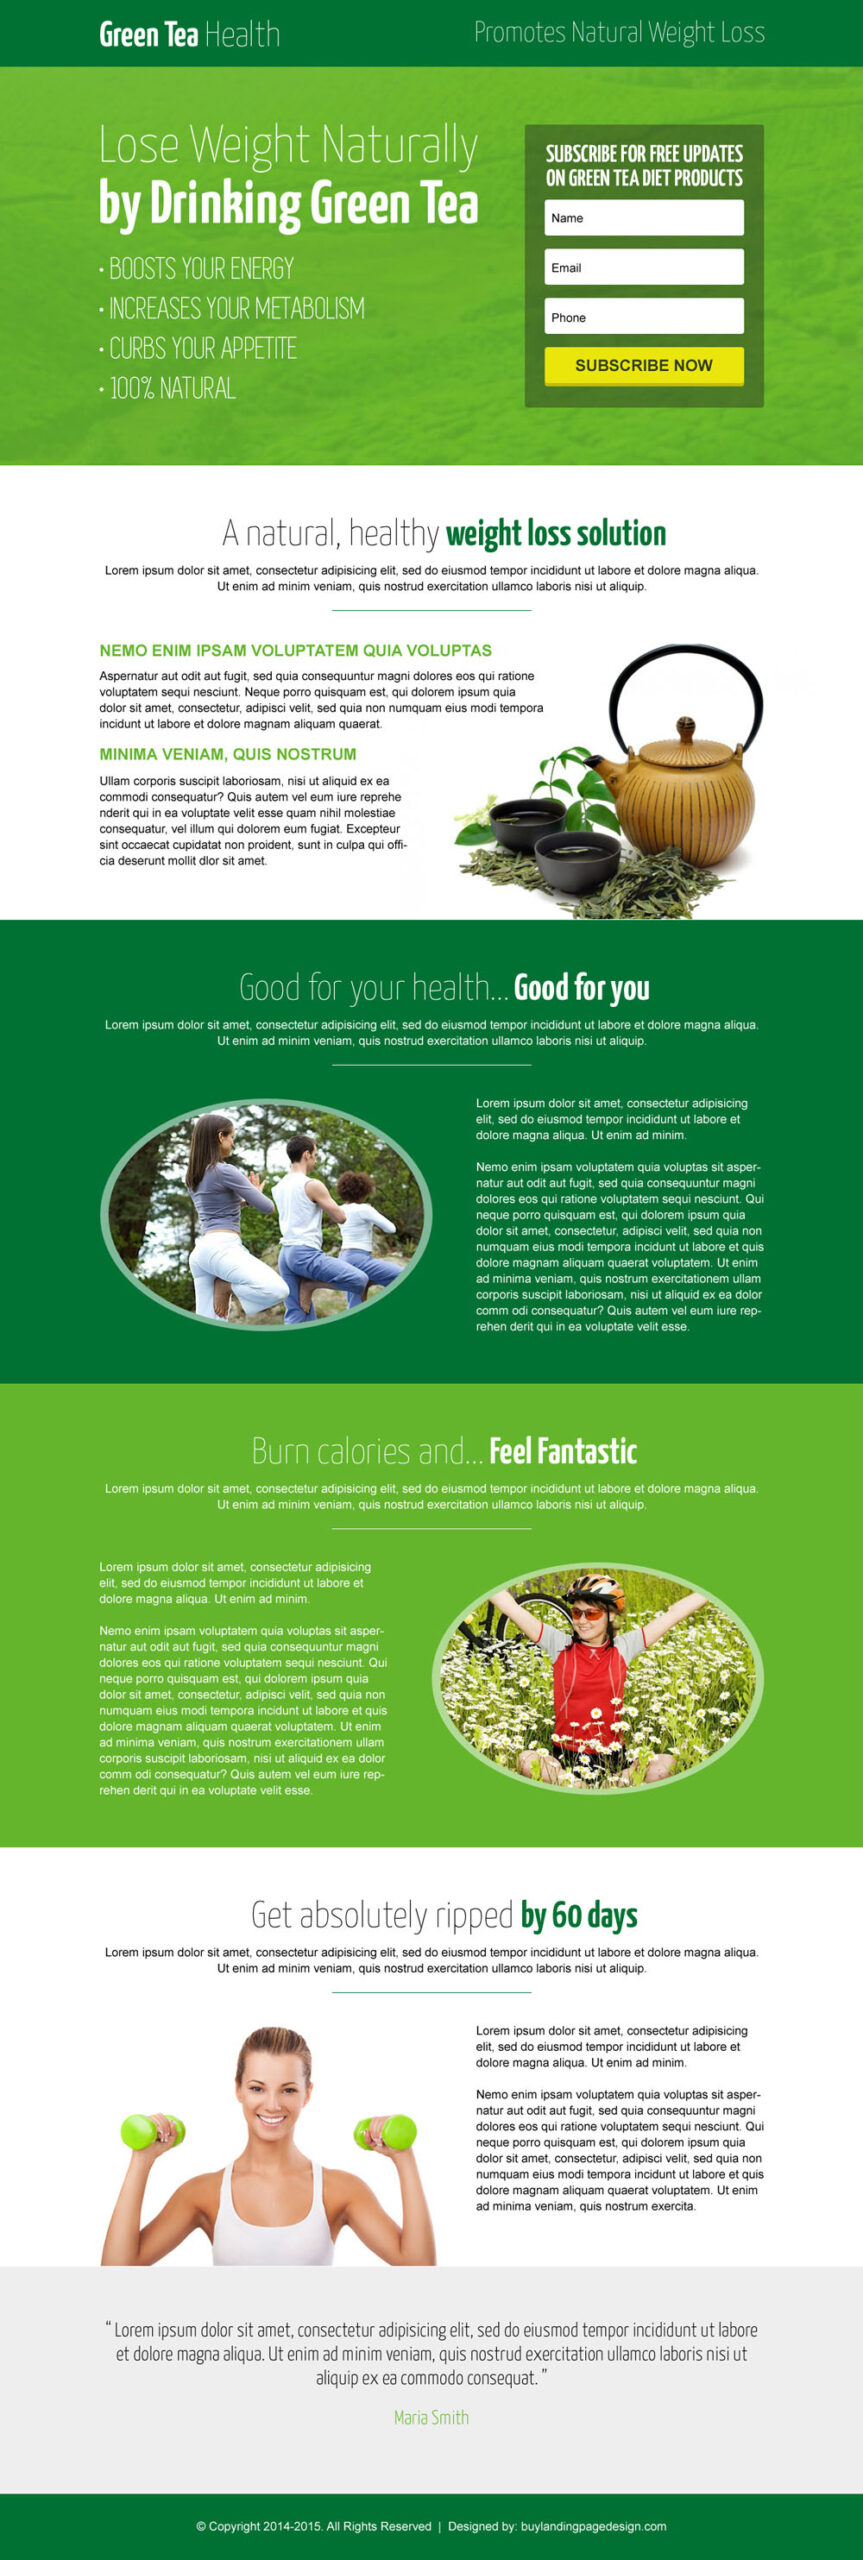 green tea natural weight loss landing page design